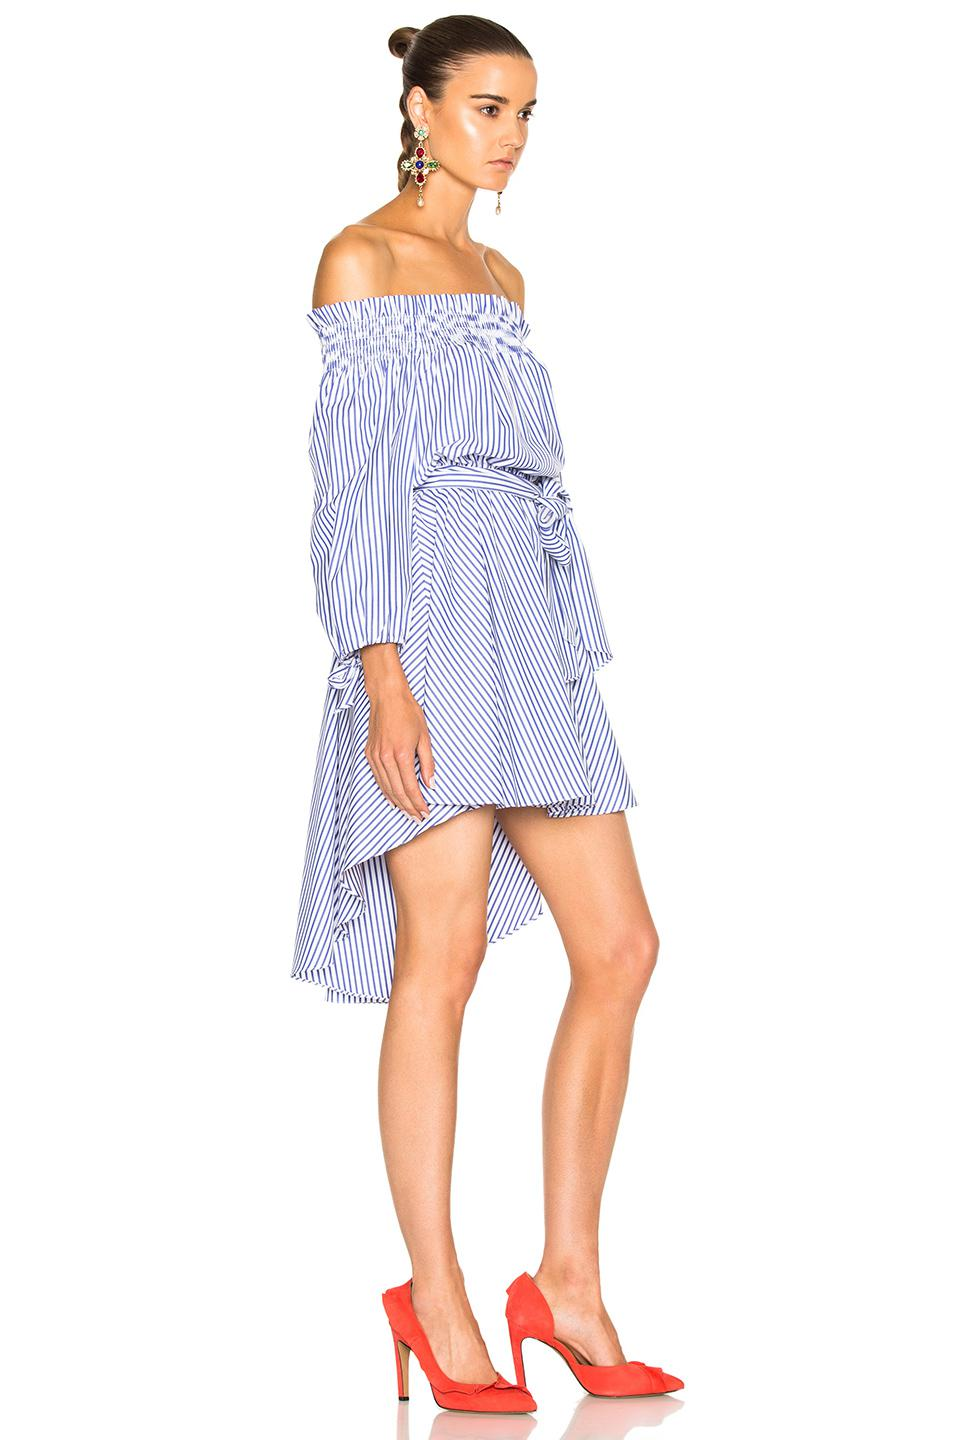 229f2dd5661f7 Gallery. Previously sold at  FORWARD · Women s Blue Dresses ...